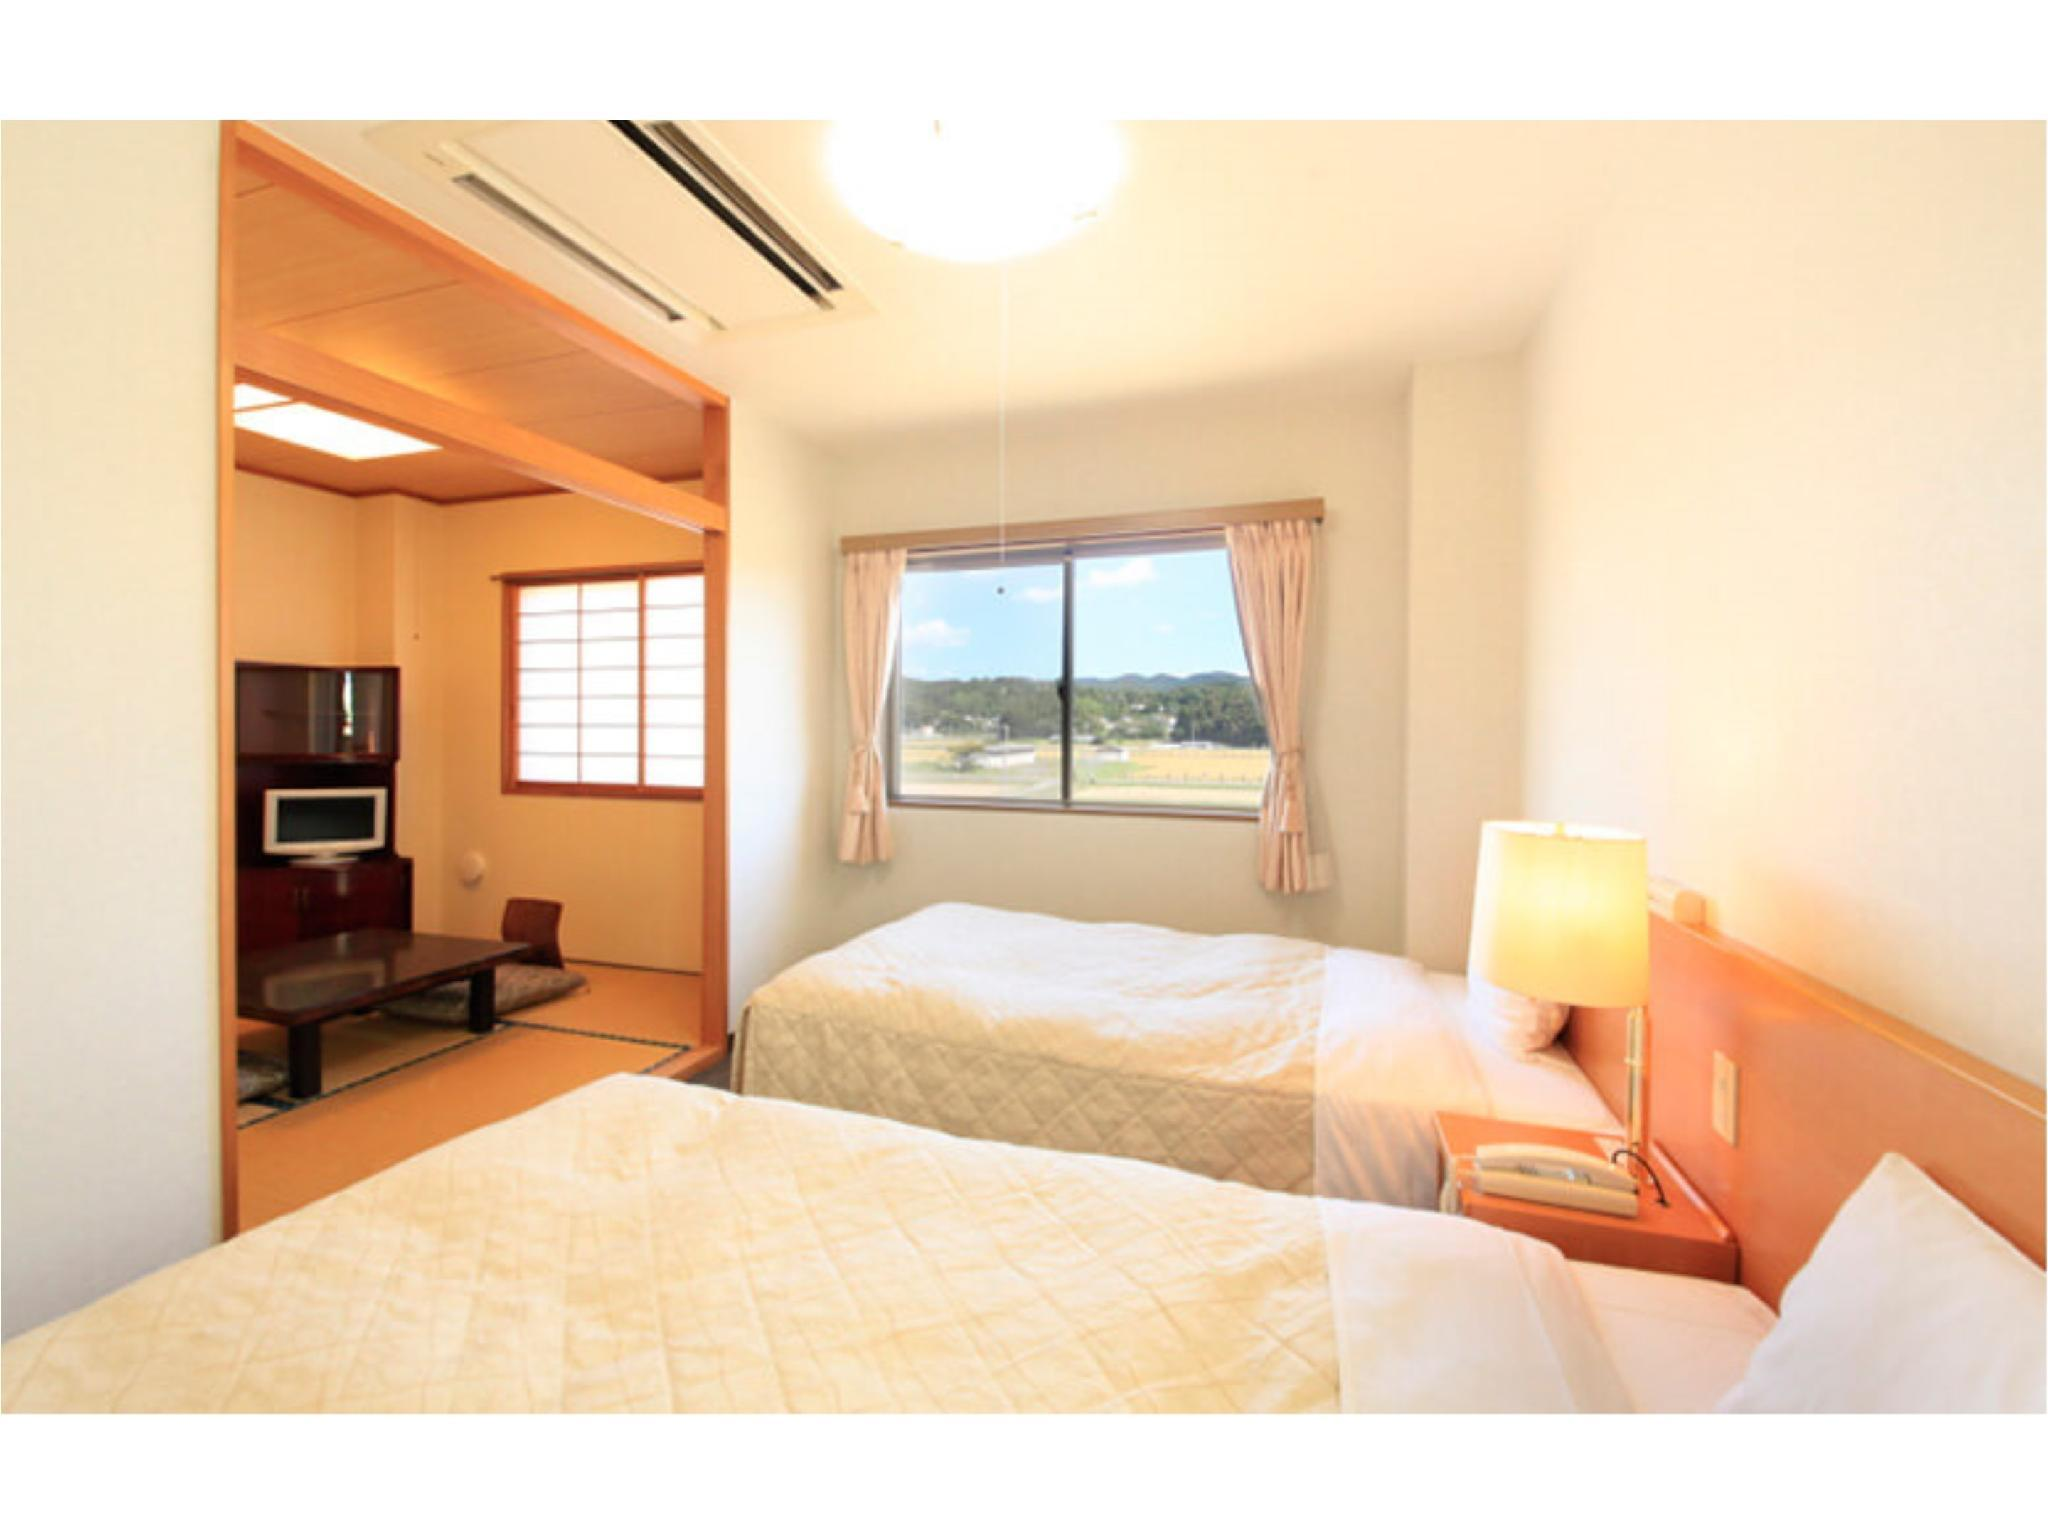 Japanese/Western-style Room (Twin Beds + Japanese-style Room)